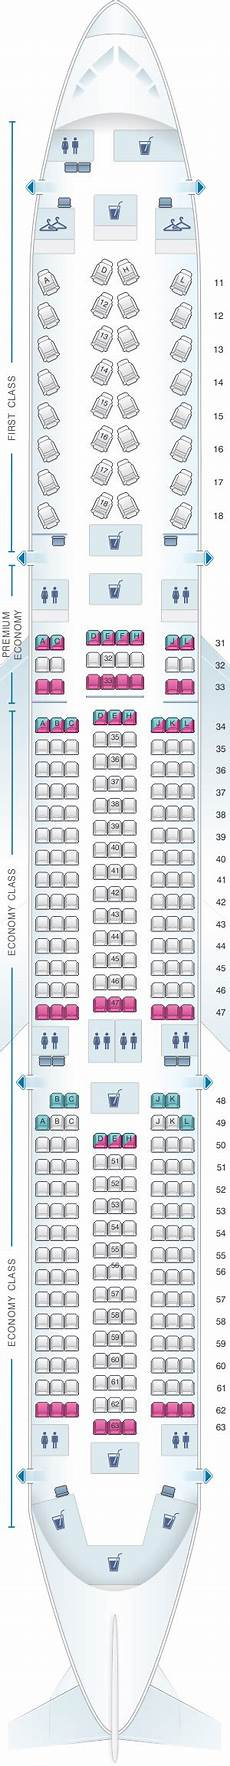 Airbus A350 900 Seating Chart Seat Map Air China Airbus A350 900 Seatmaestro